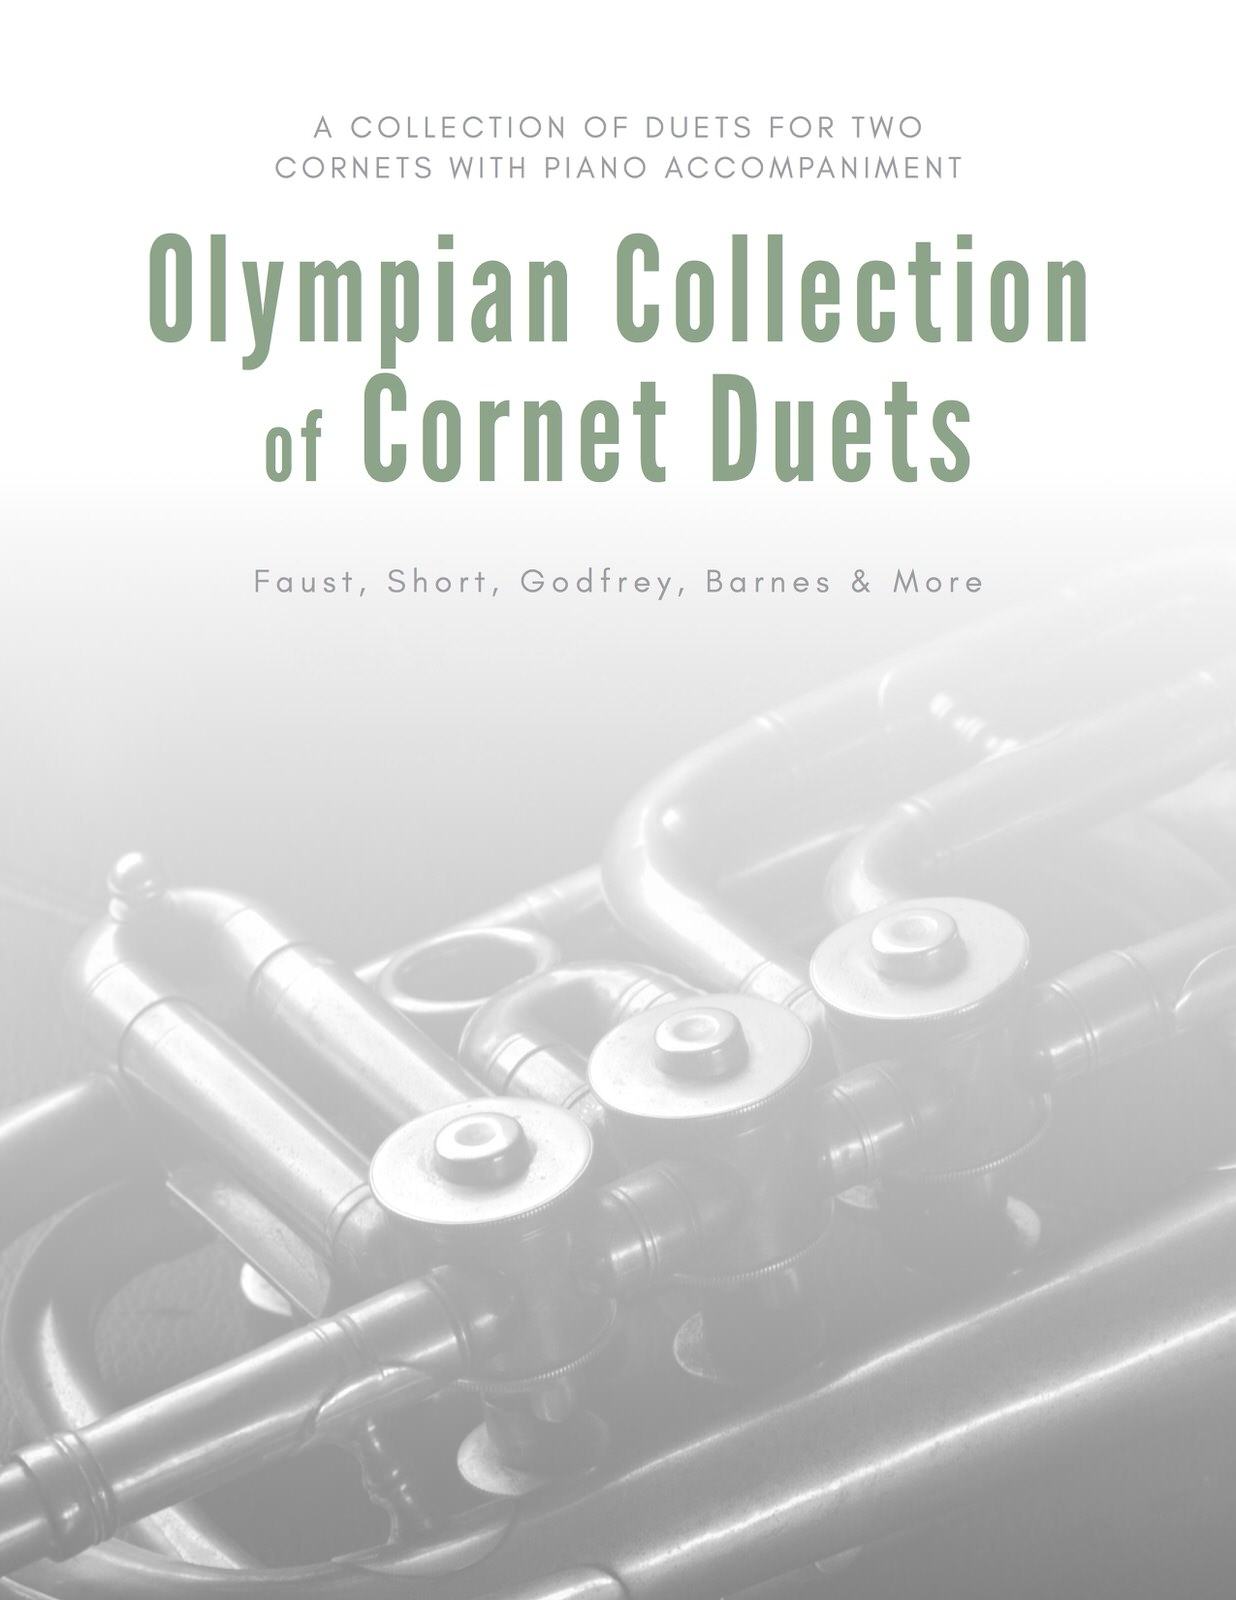 Simon, Olympian Collection of Cornet Duets with Piano-p01